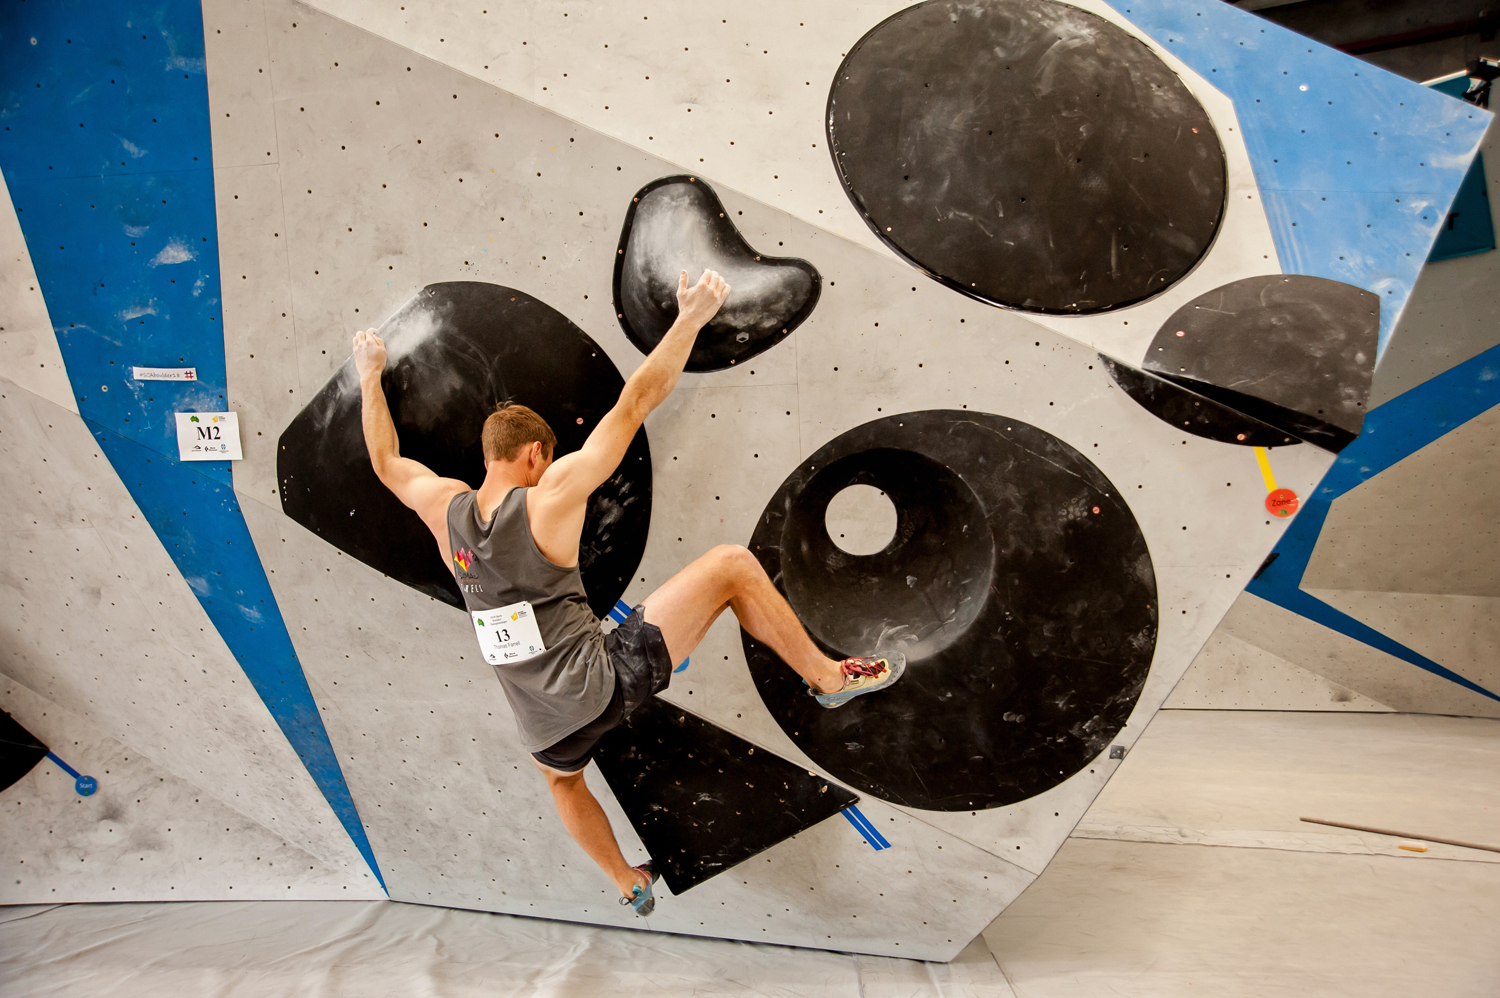 Climbing Rocks Professional Climbing Photography Competition Open Bouldering Championships 2019 (12)